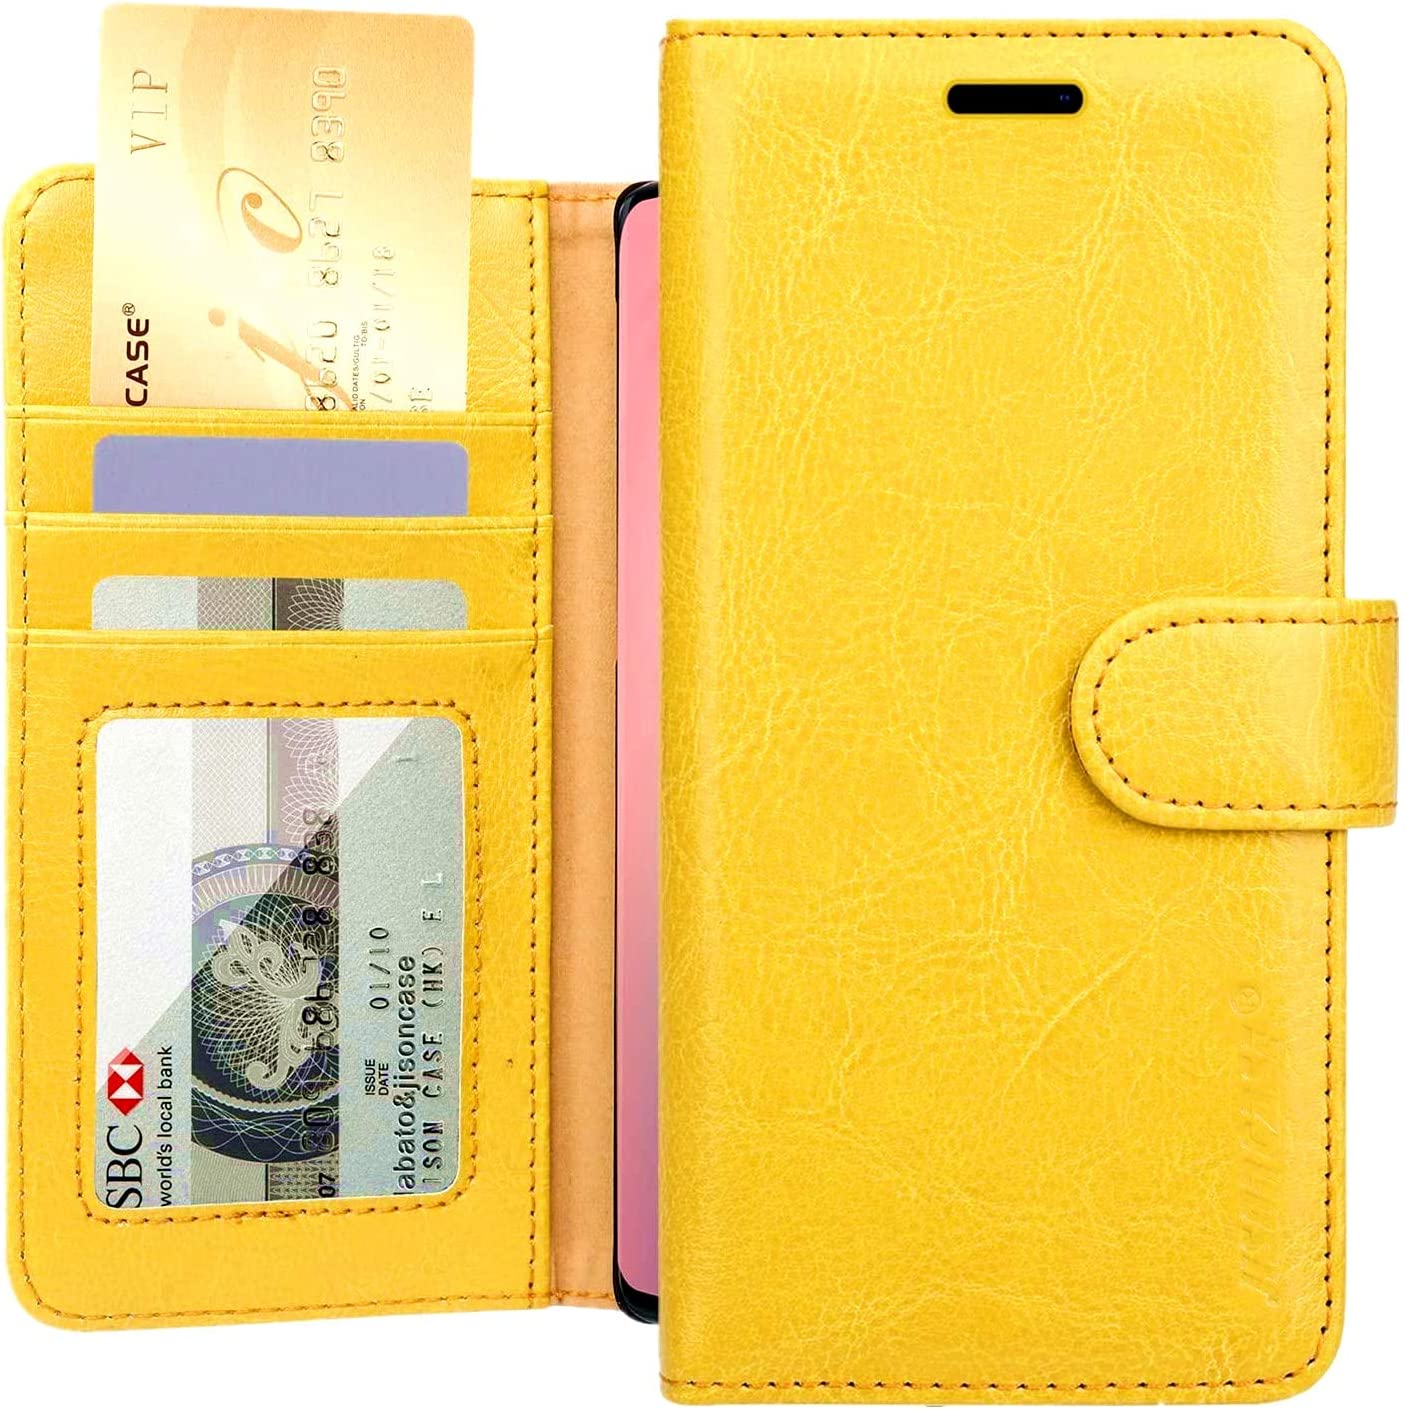 JISONCASE iPhone XR Wallet Case, Leather iPhone Xr Cases Women Girls with Credit Card Holder Slot Magnetic Closure Shockproof Protective Flip Case for Apple iPhone XR 6.1'', Yellow